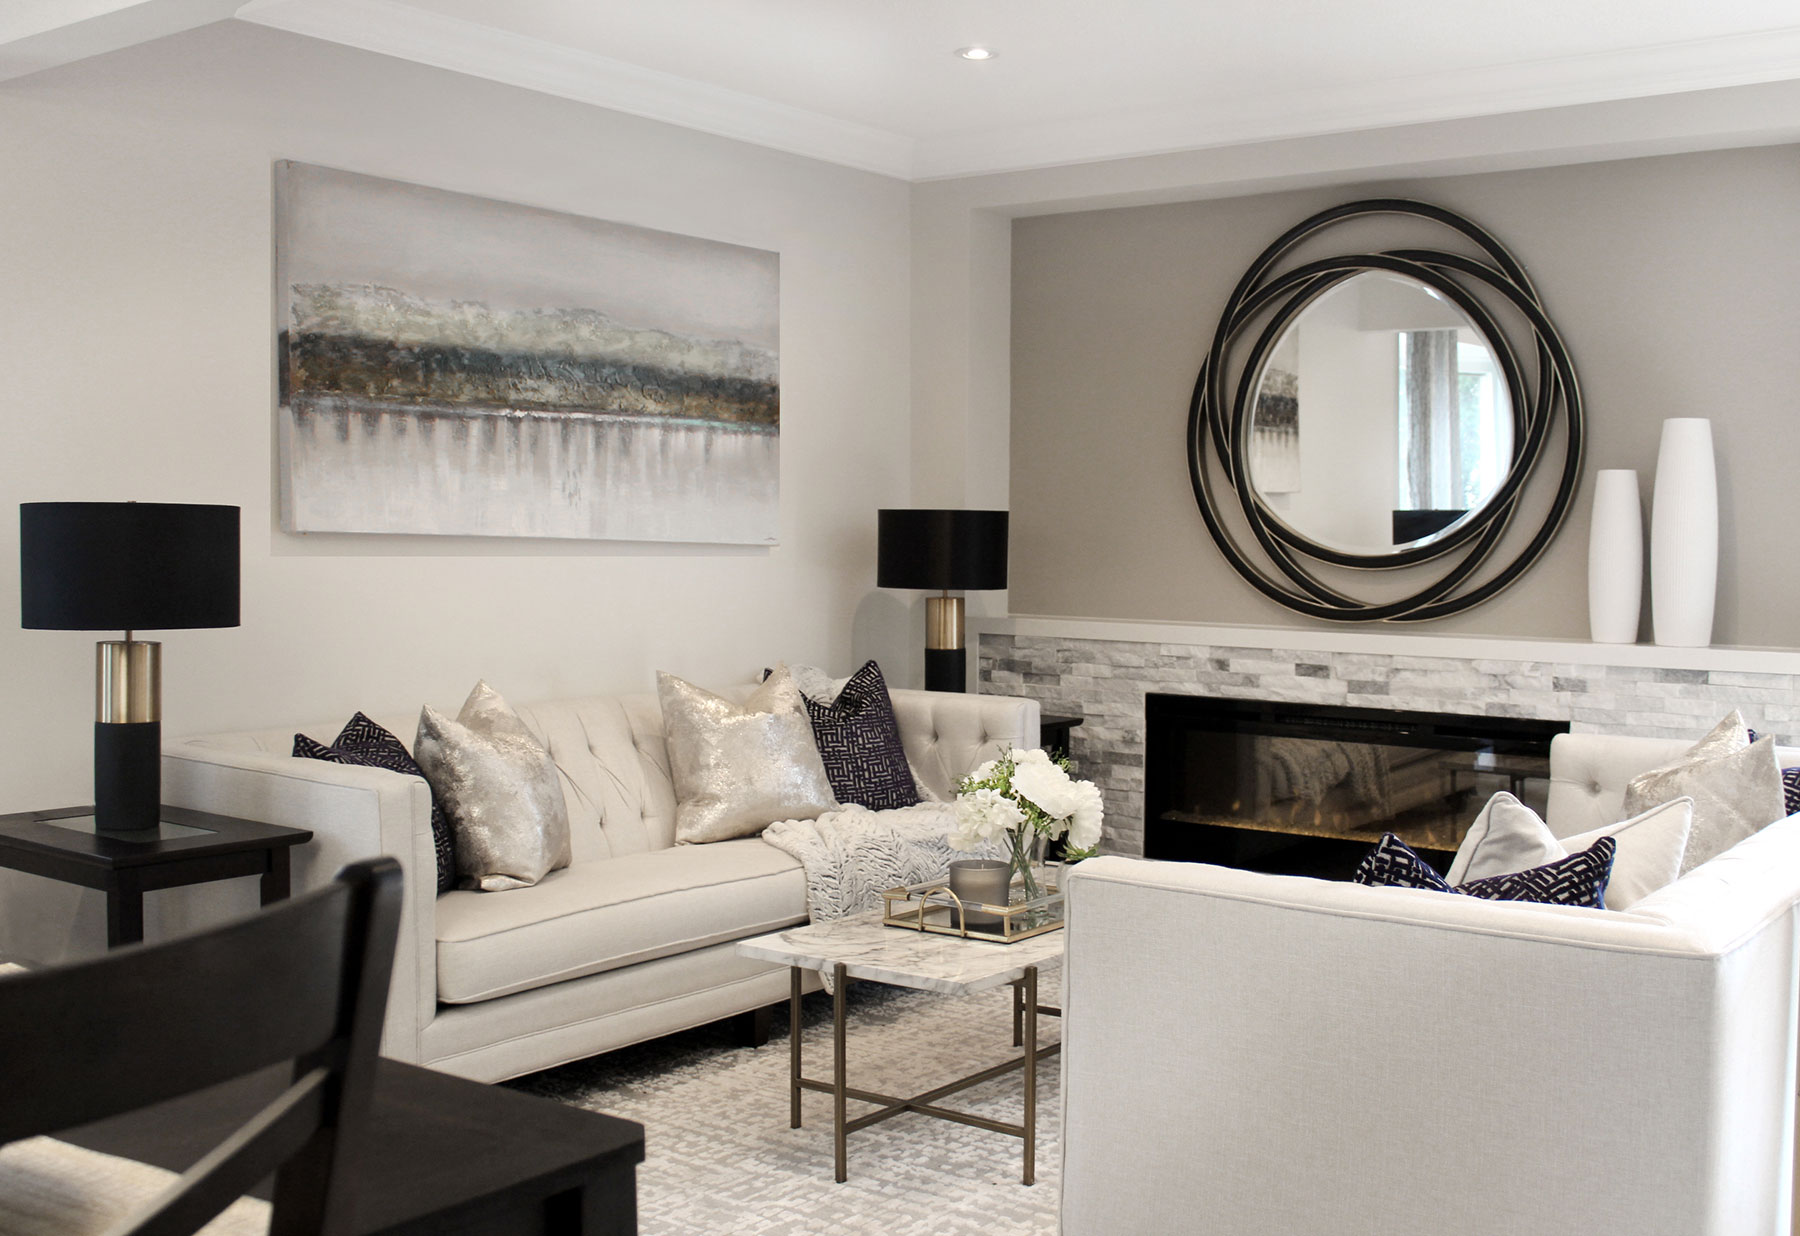 To make the space feel light and luxurious, we kept much of the palette and accessories very subtle